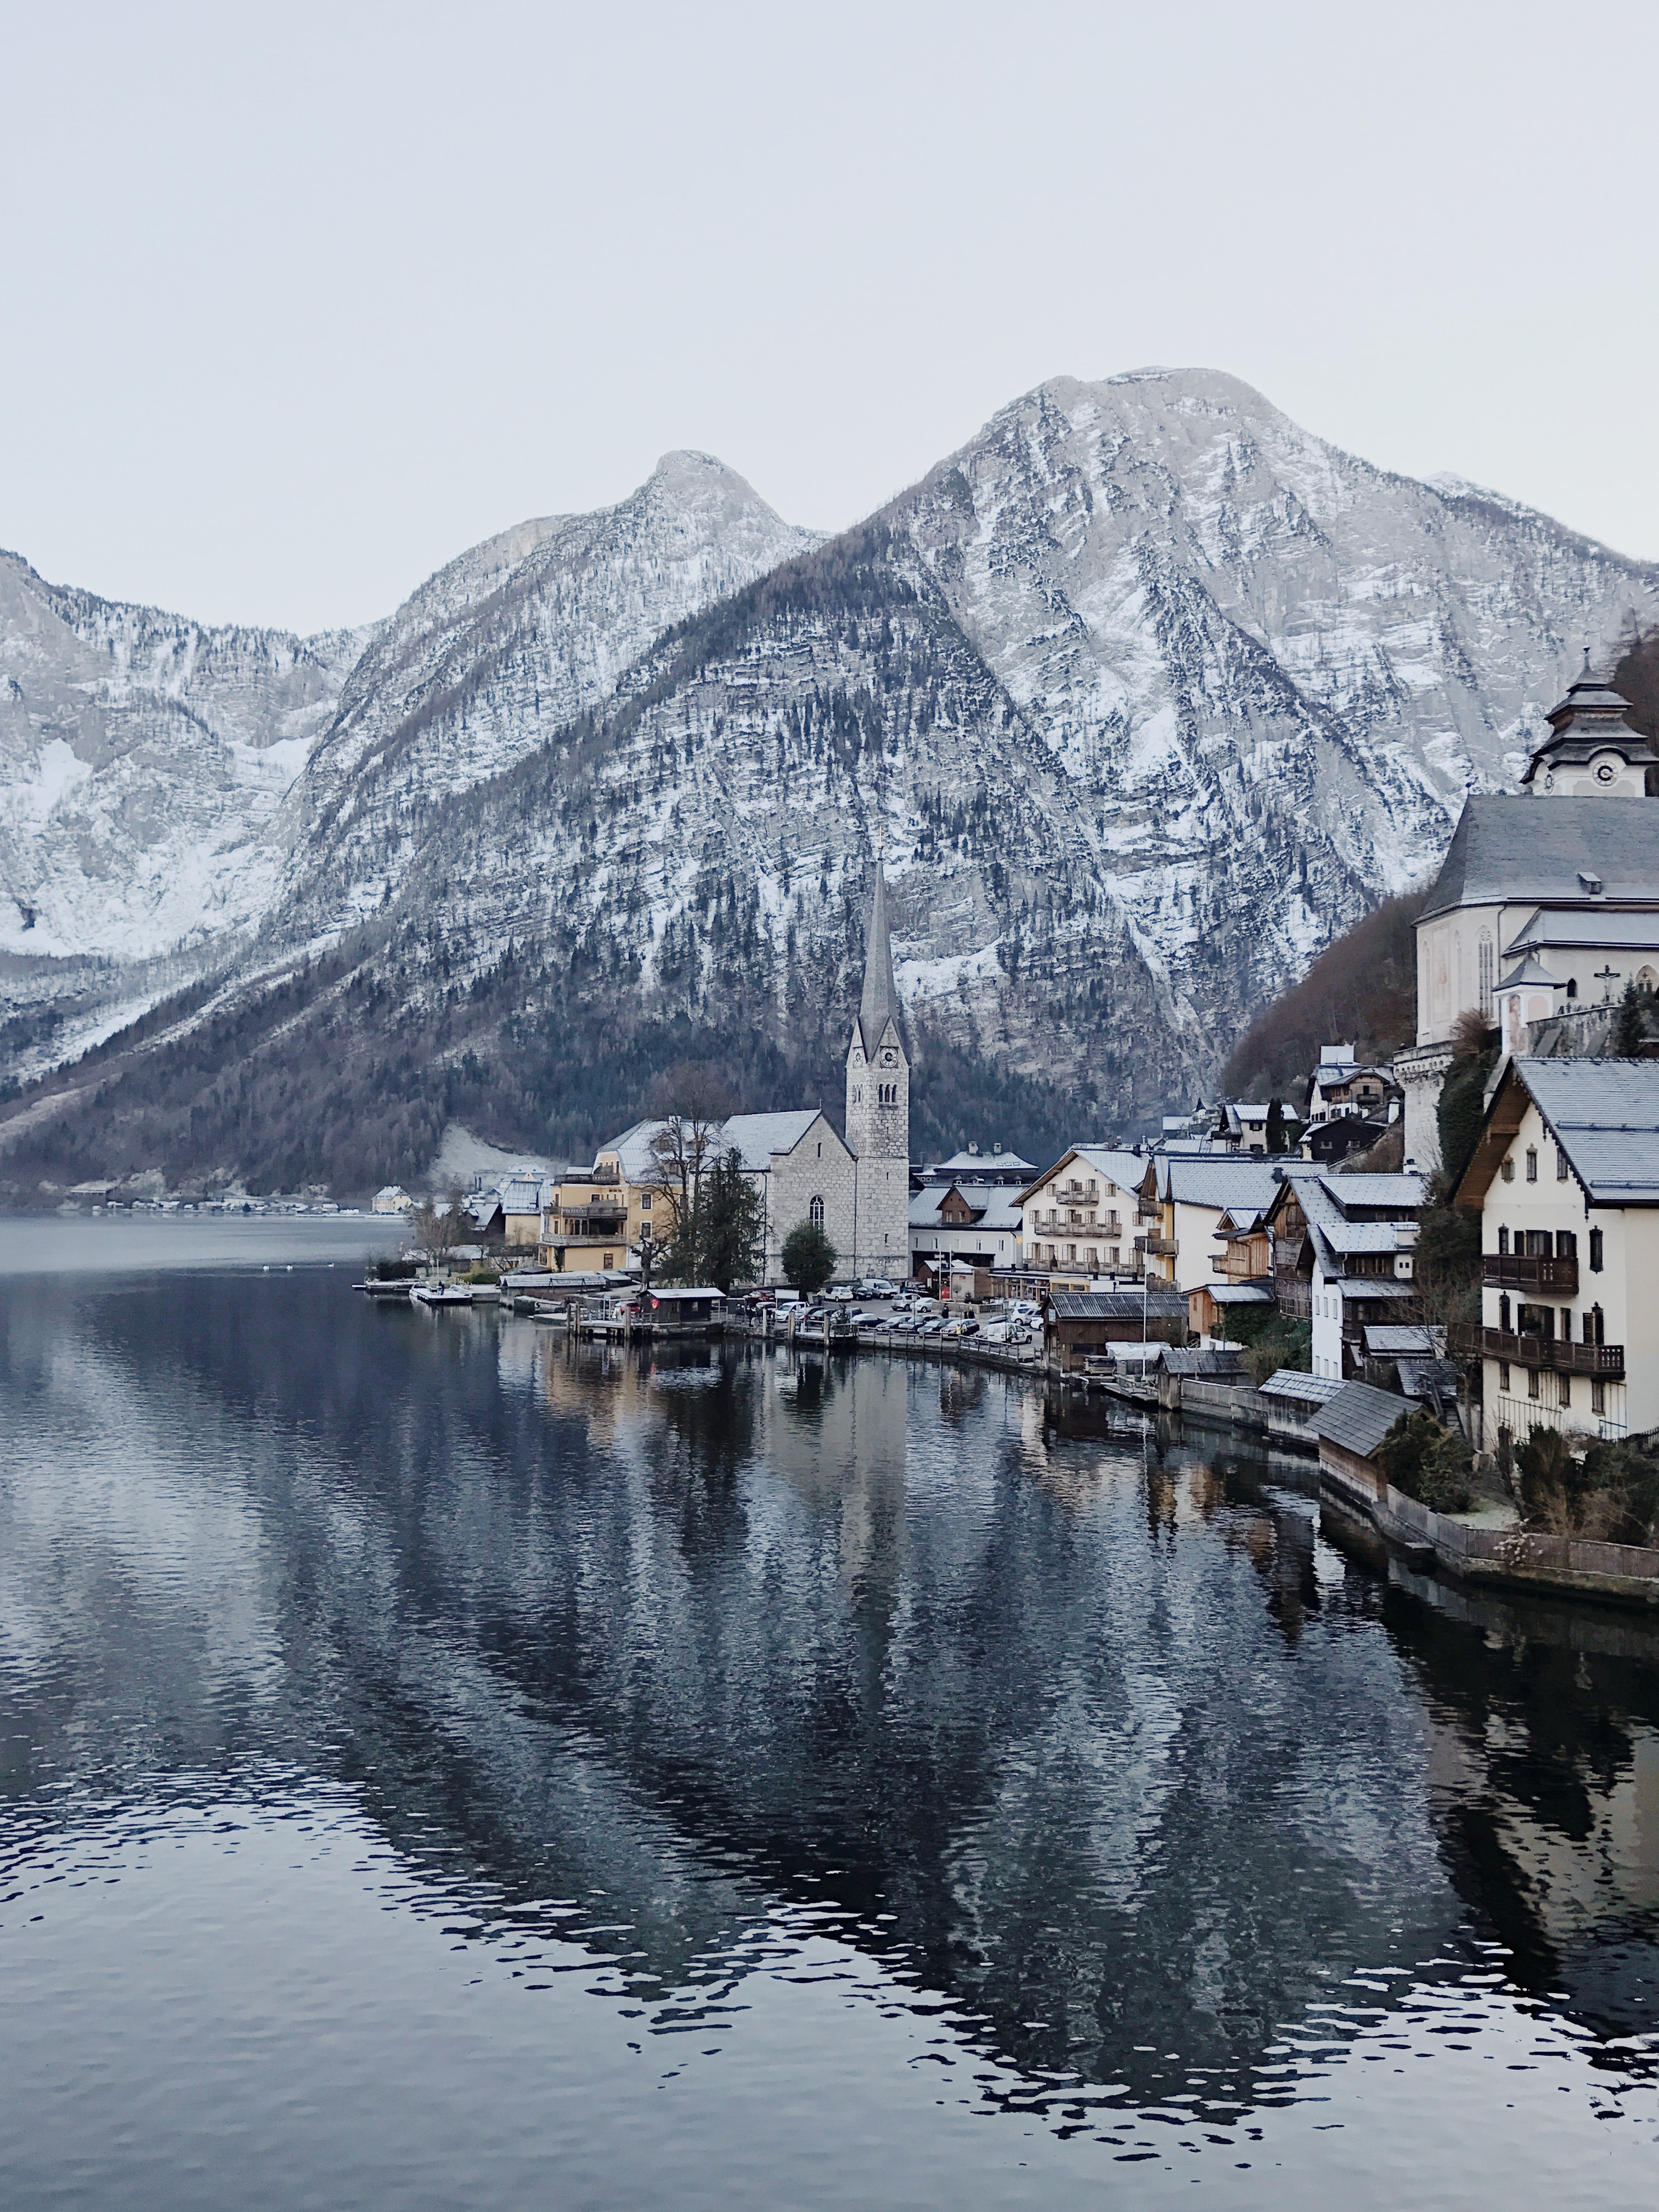 A church at a lake with snow capped mountains in the background